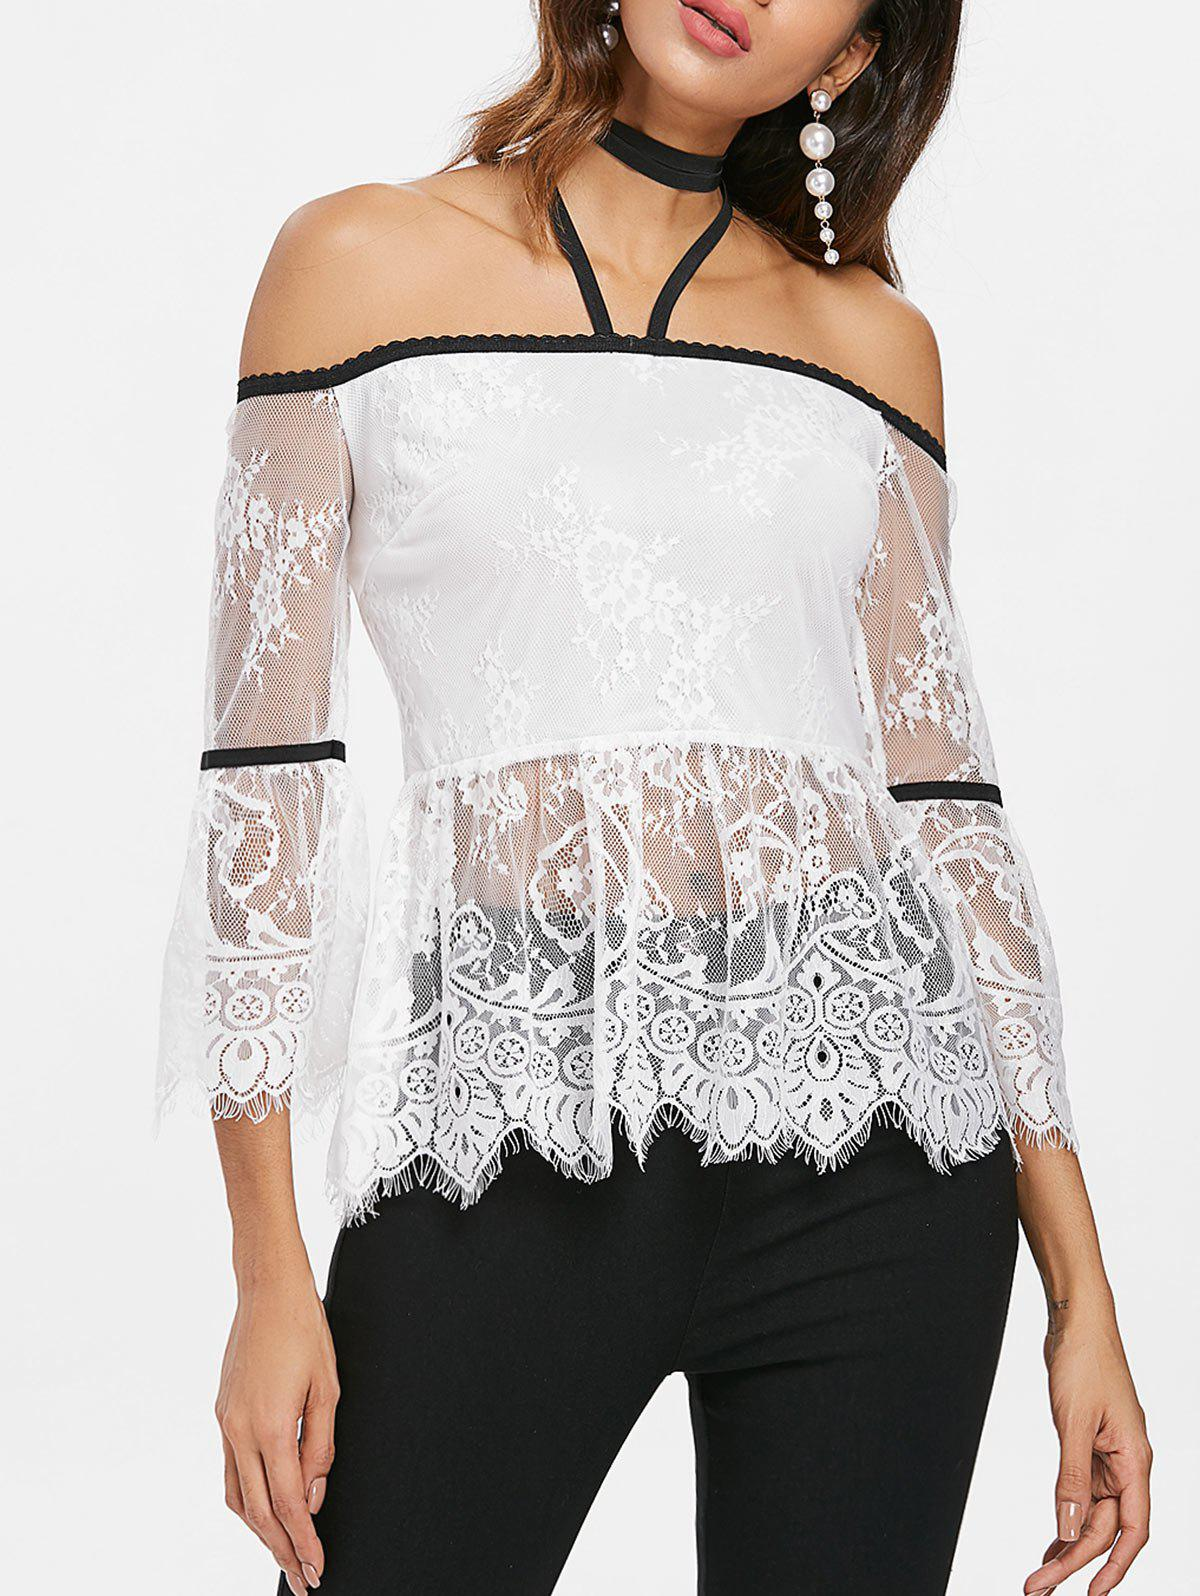 Latest Halter Neckline Backless Lace Blouse